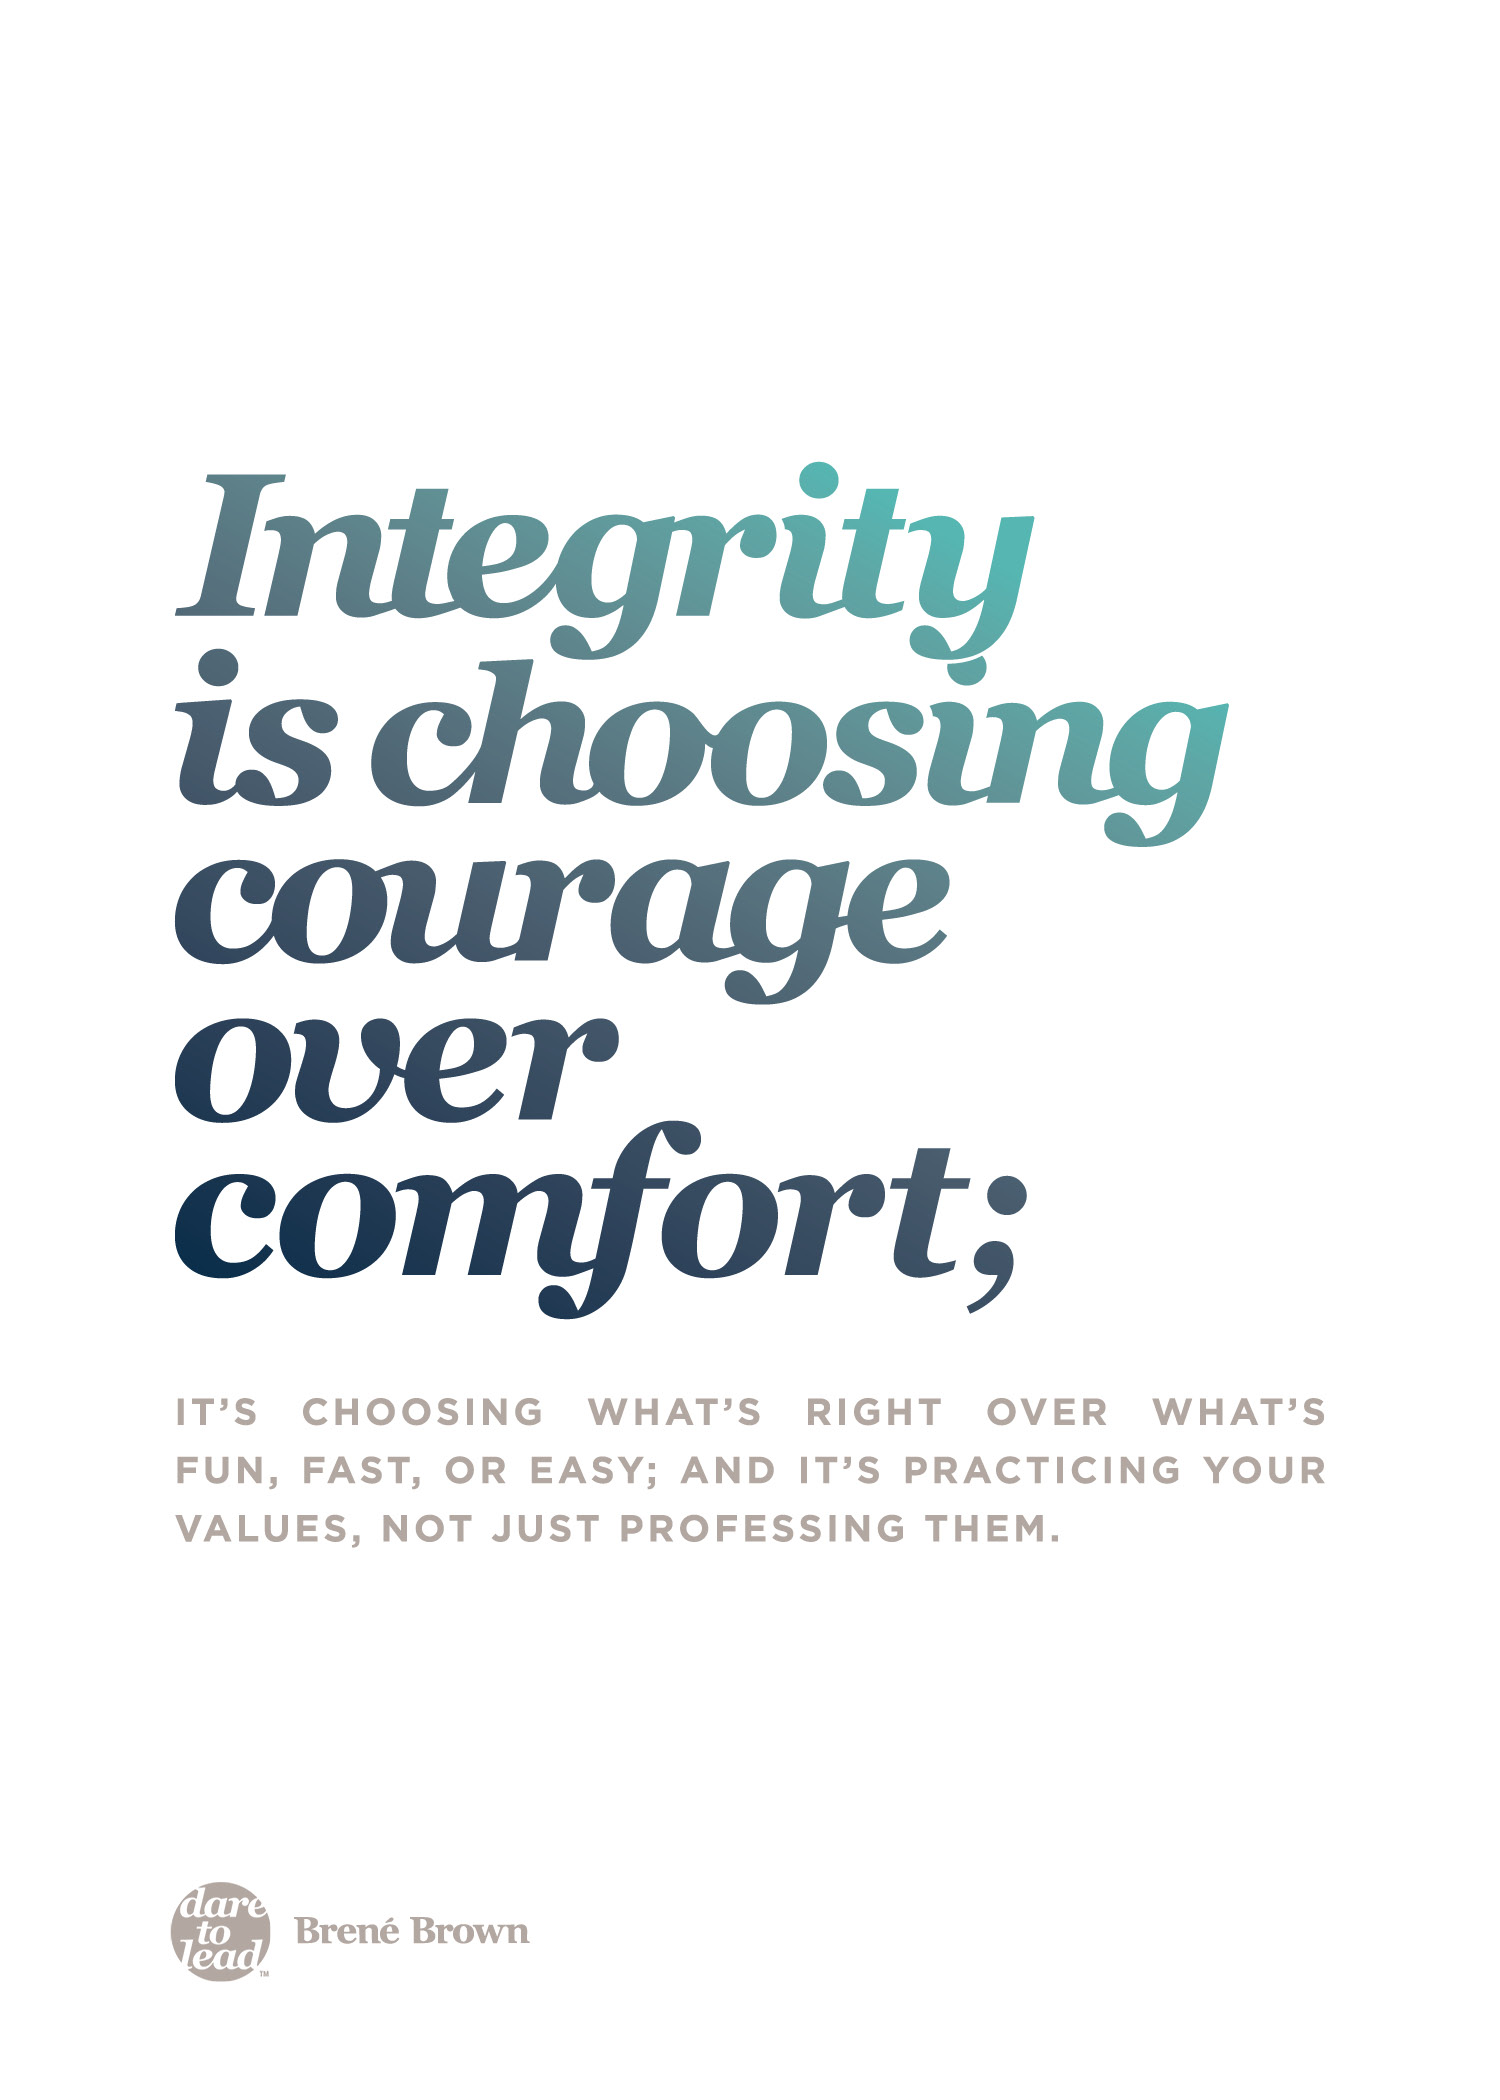 """Integrity is choosing courage over comfort; it's choosing what's right over what's fun, fast, or easy, and it's practicing your values, not just professing them."" - Brené Brown"